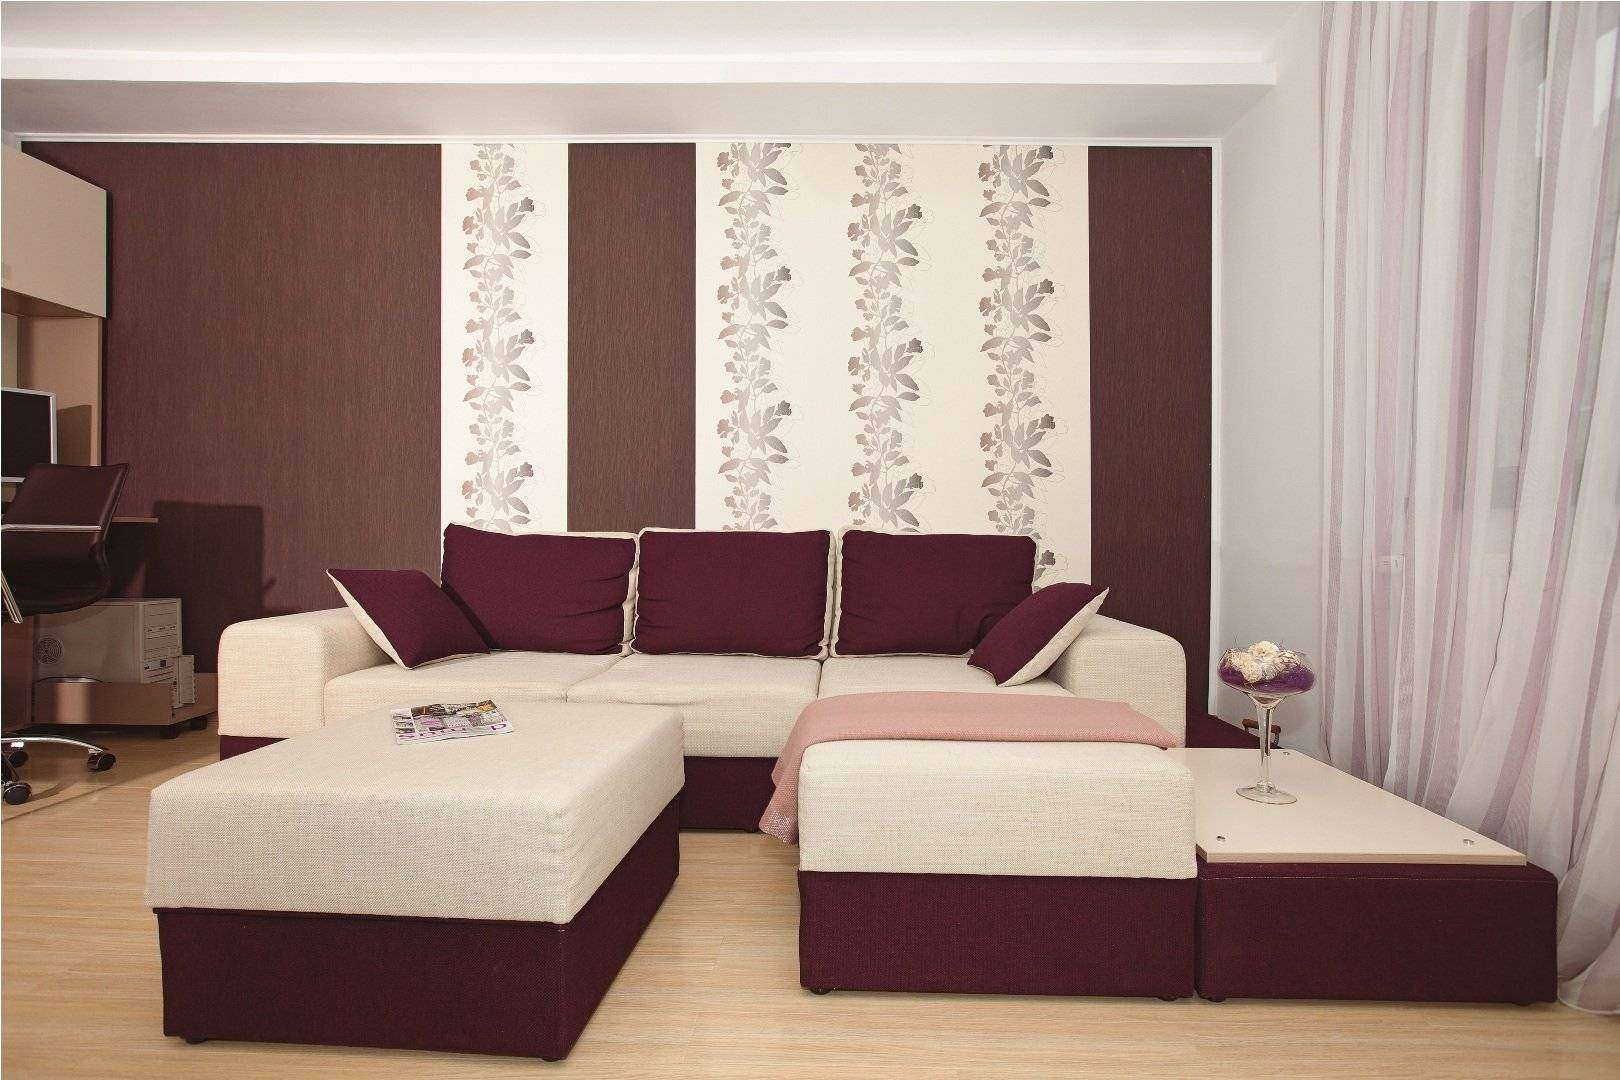 <a href=&quot;Mobila living Simone cu birou integrat &quot;>Mobila living Simone cu coltar living extensibil<img src='http://www.unican.ro/wp-content/themes/vita/img/dreapta.png' class='pull-right hidden-xs' style='margin-right:-10px;margin-top:-10px; max-height:41px'></a>